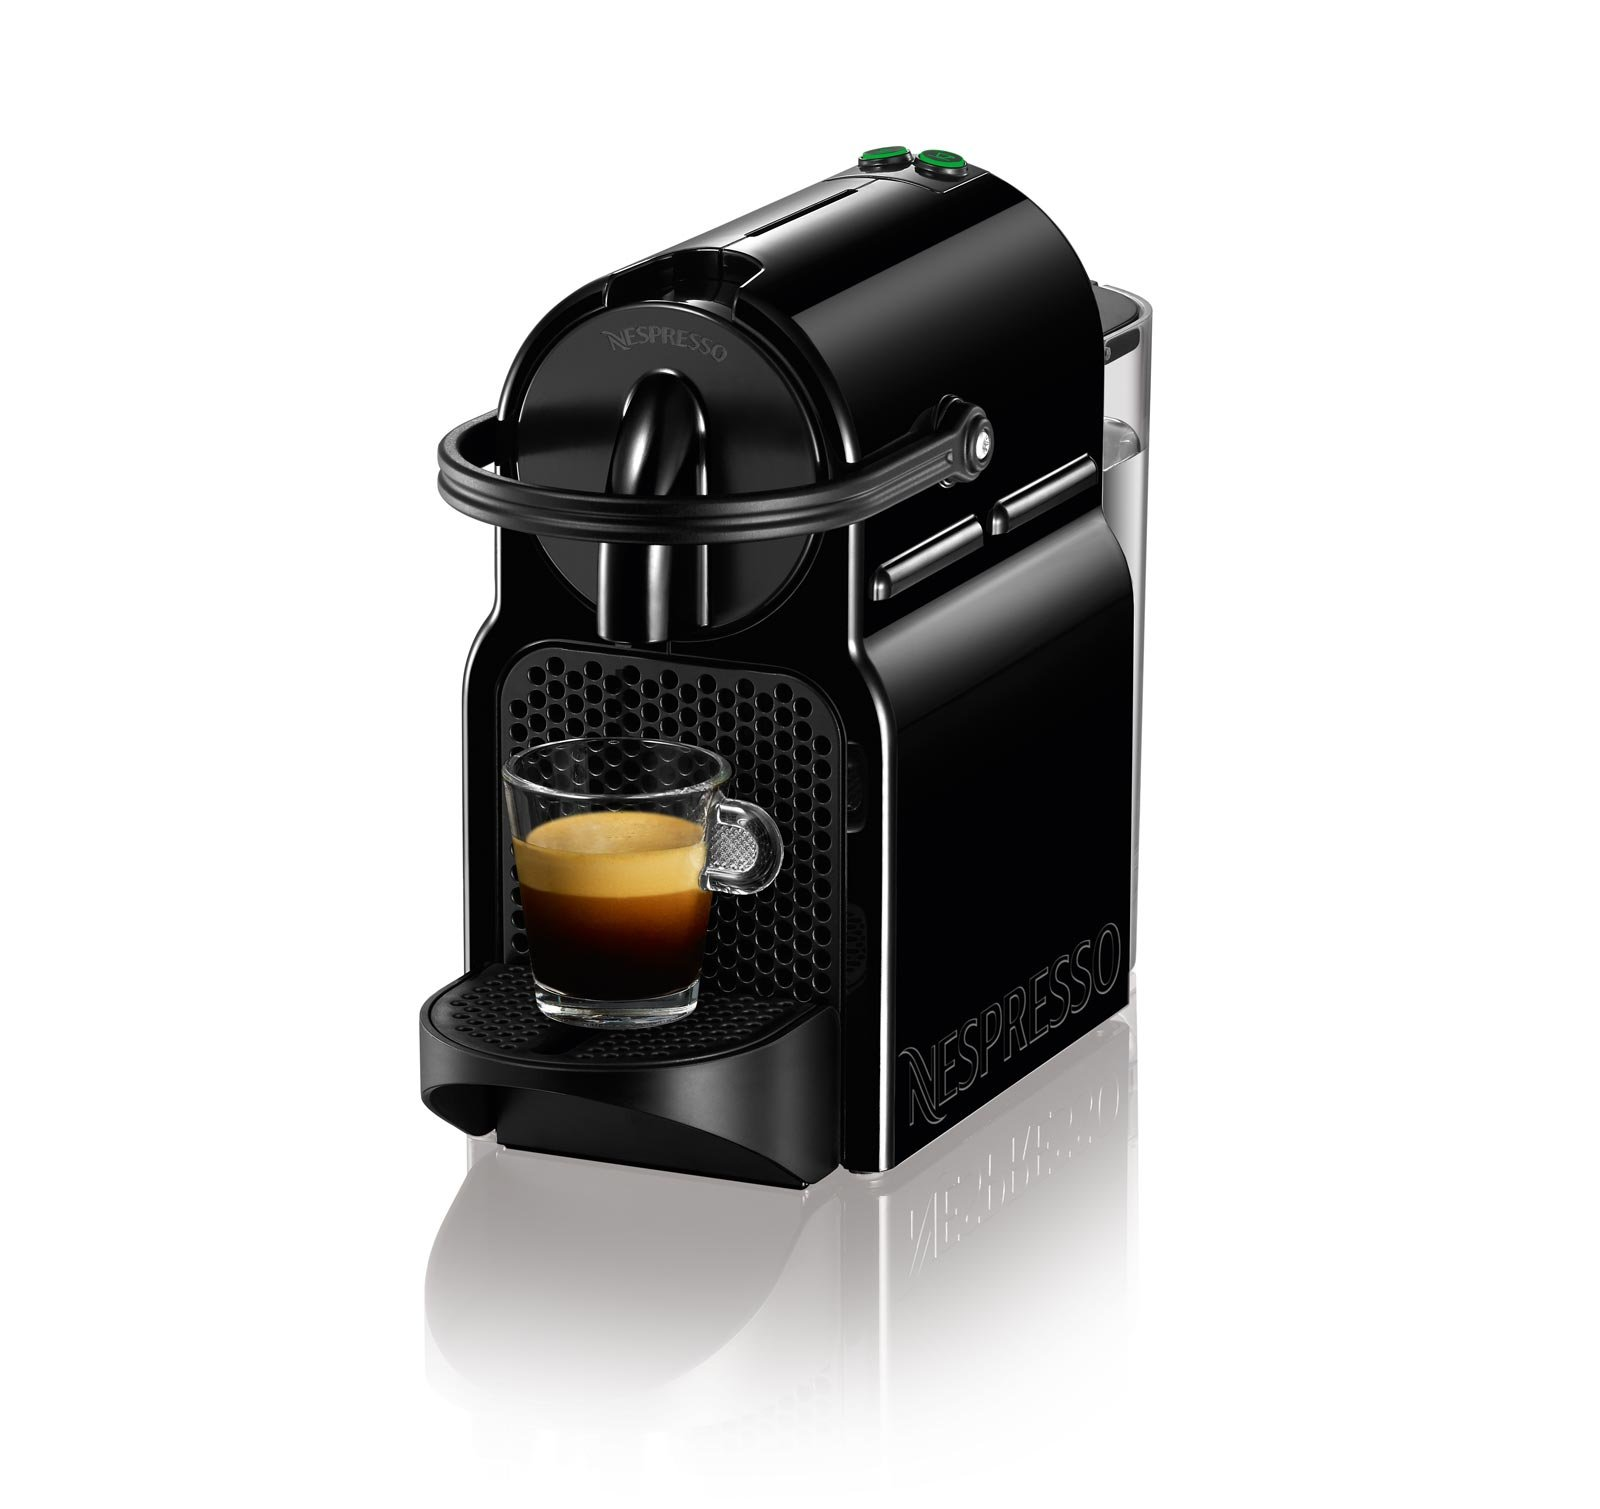 nespresso inissia espresso maker black black standard packaging ebay. Black Bedroom Furniture Sets. Home Design Ideas